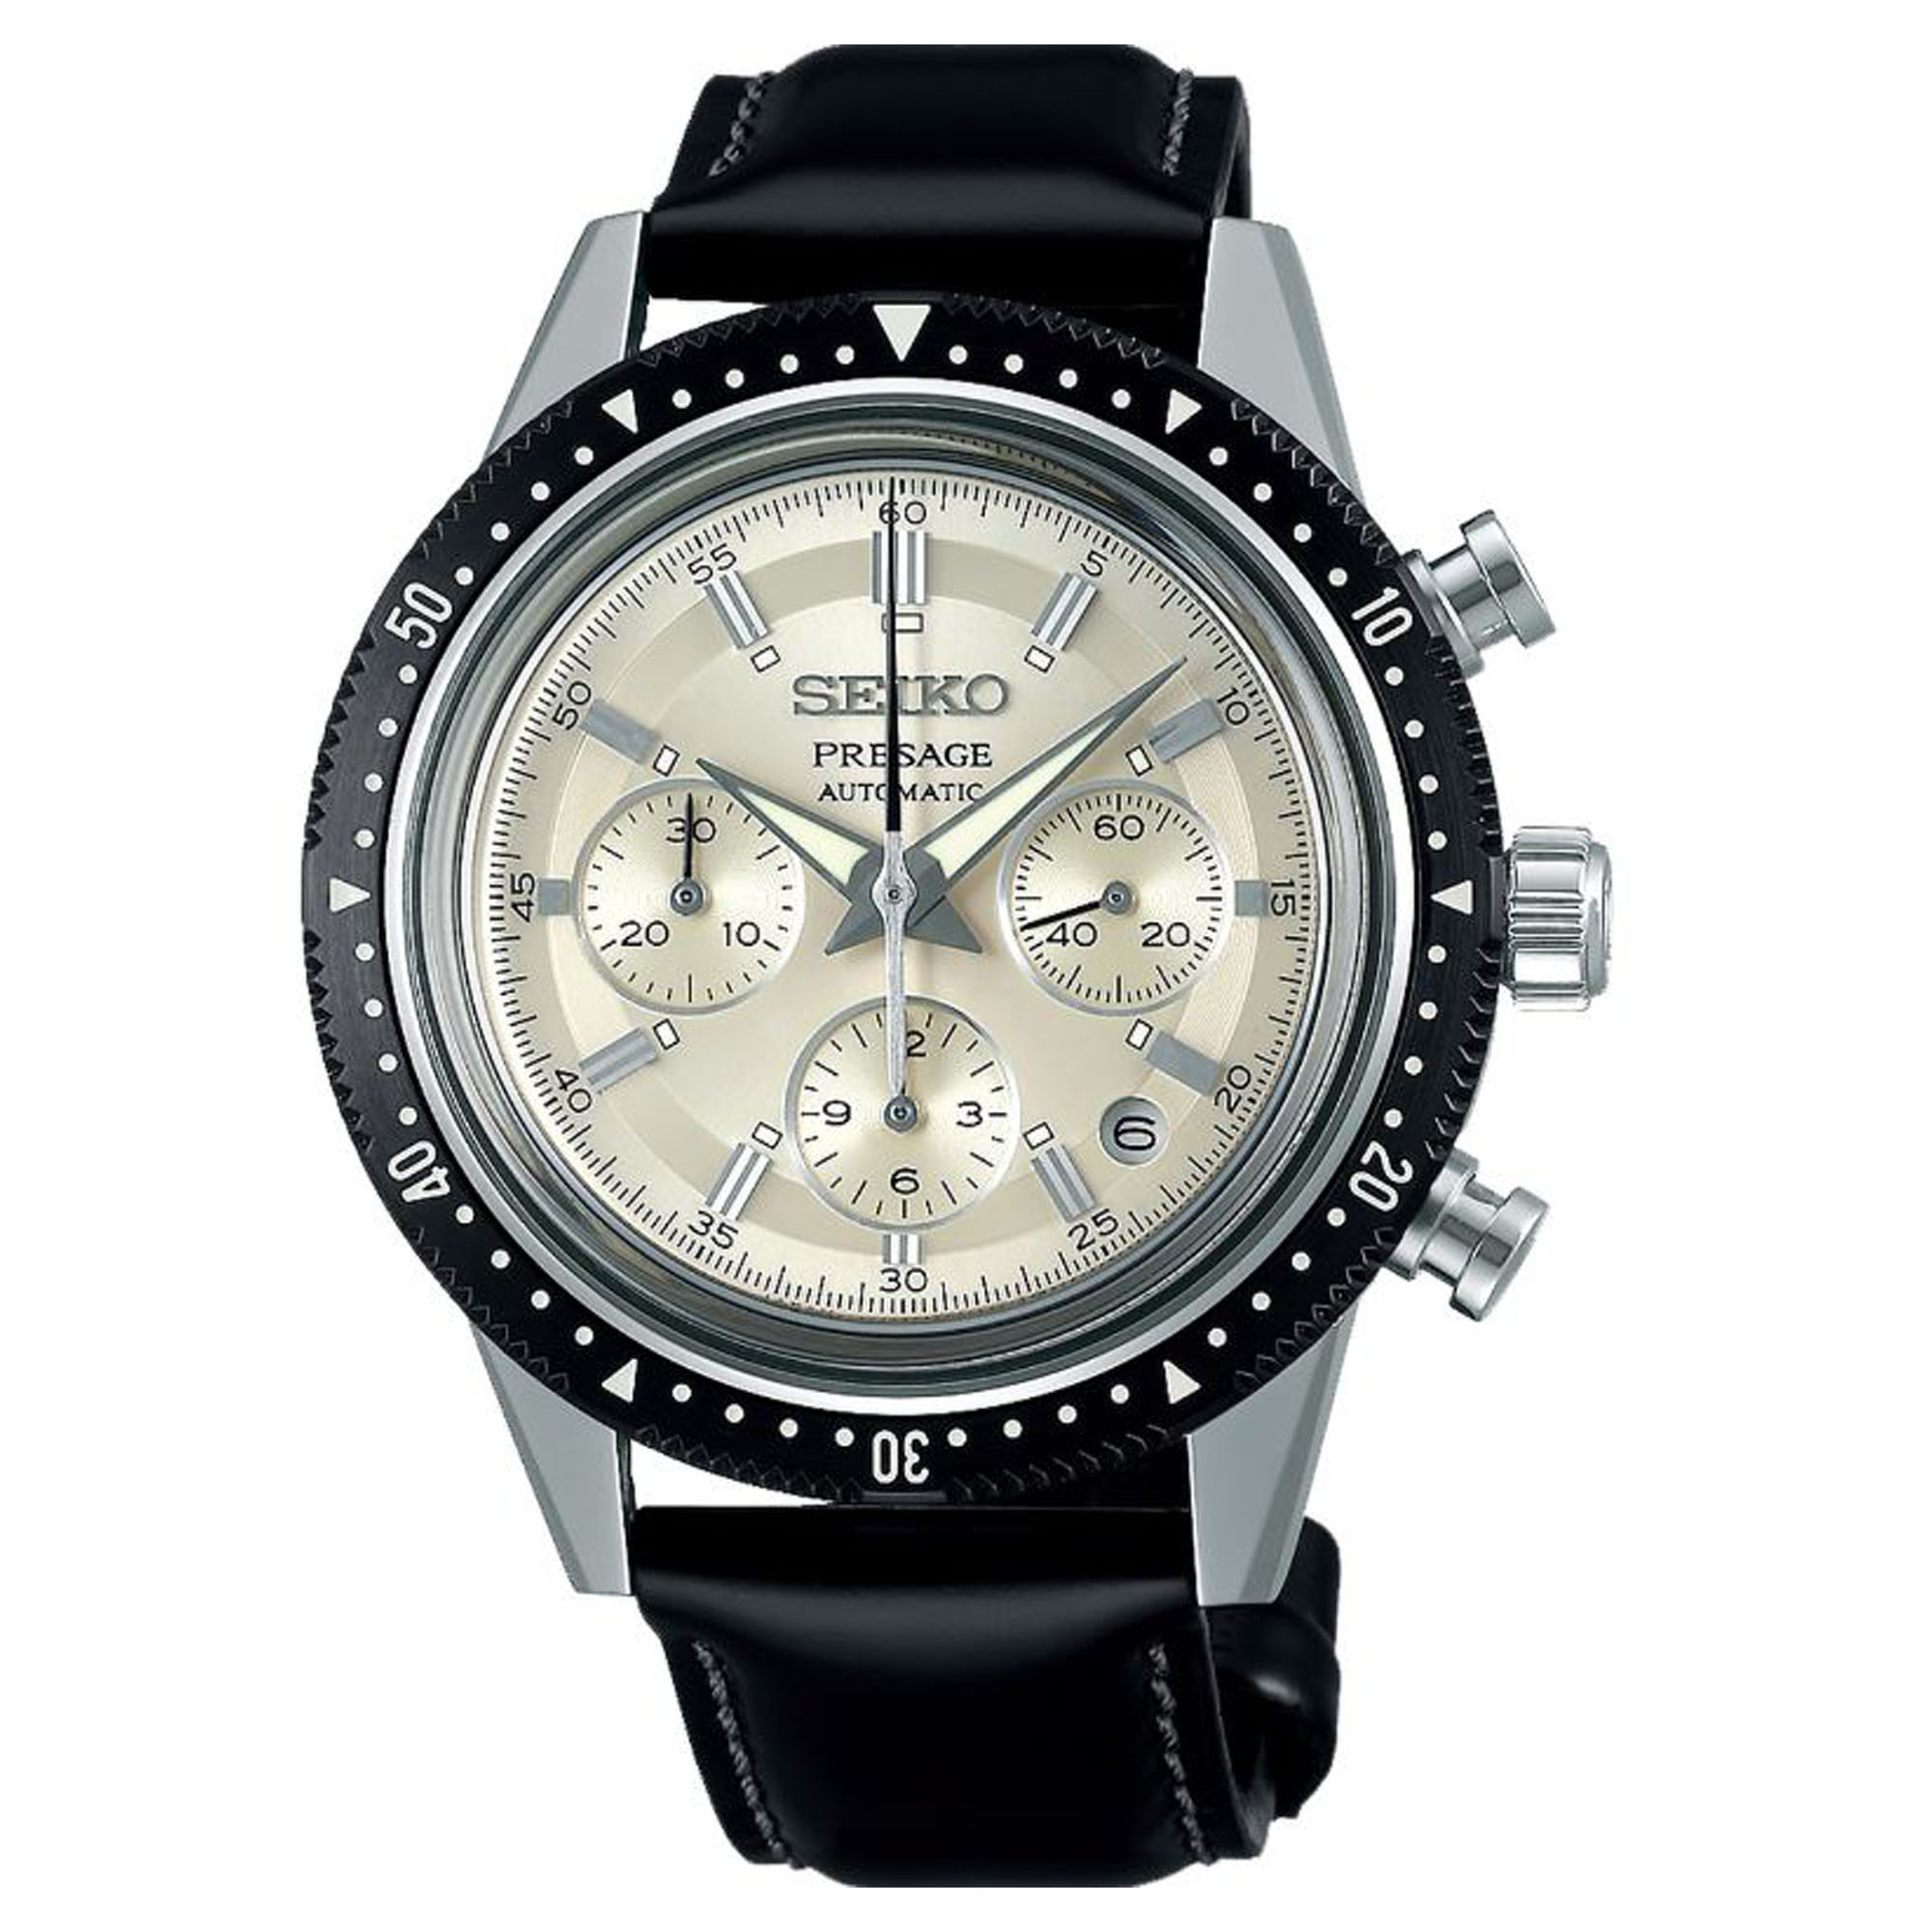 Seiko Limited Edition 55th Anniversary Presage Automatic Cream Dial Black Leather Strap Chronograph Men's Watch SRQ031J1